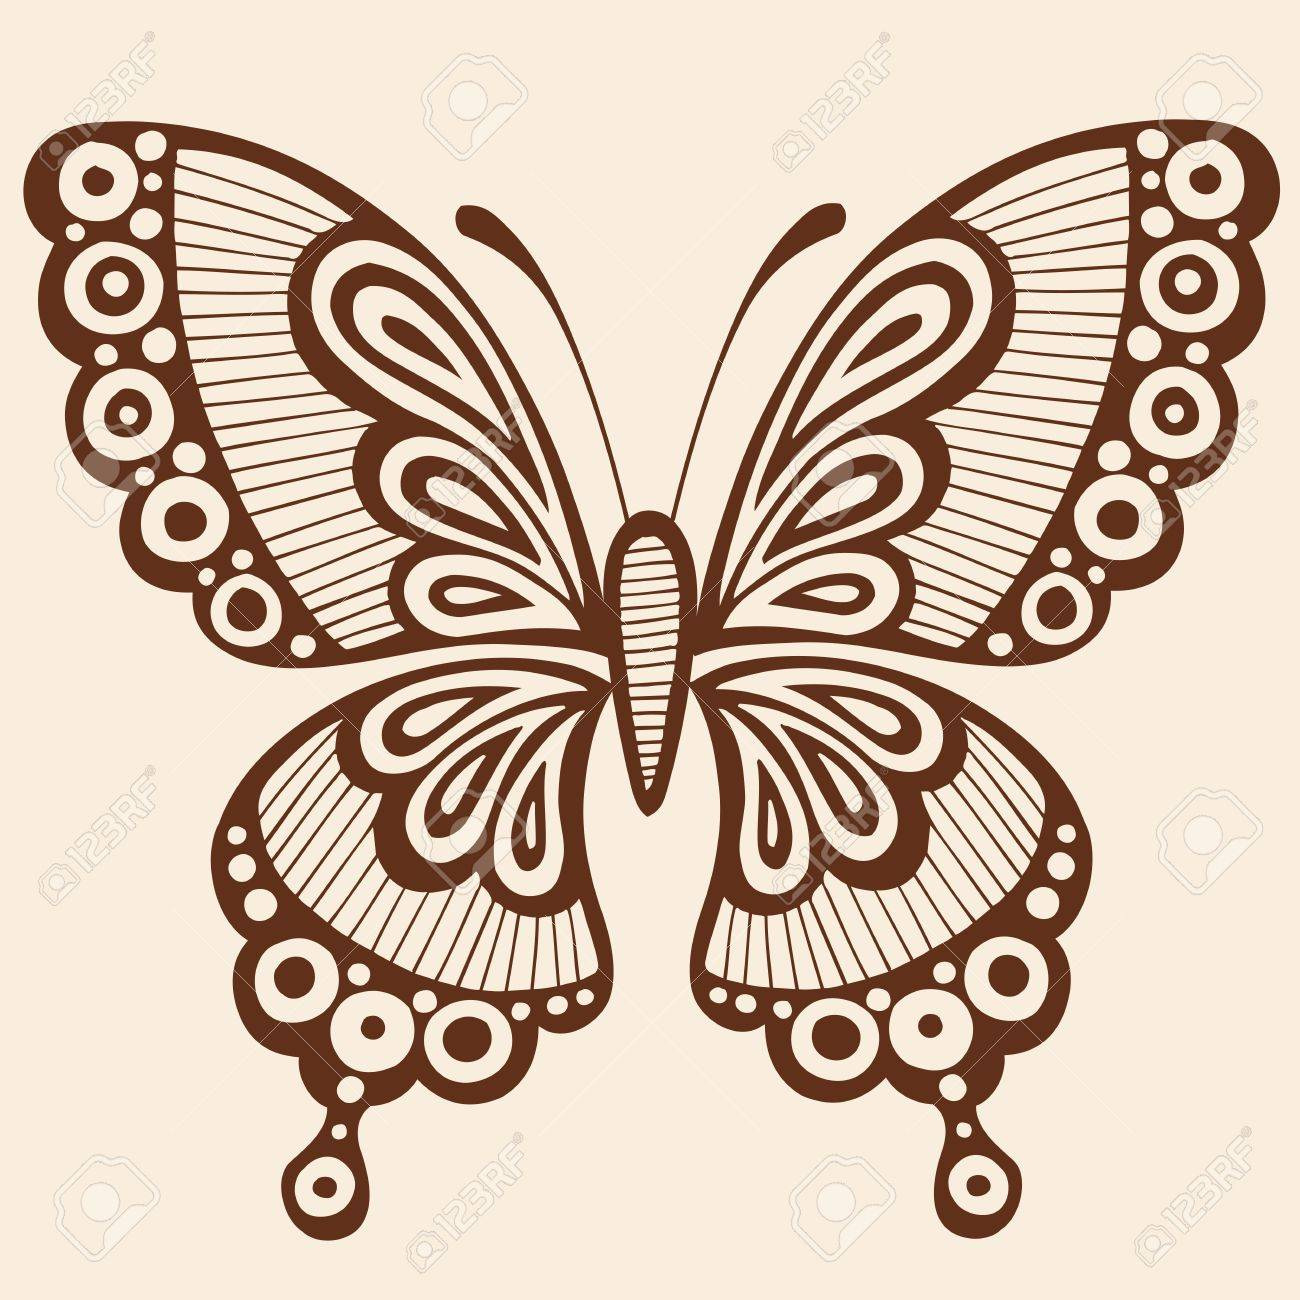 71ba242fc6633 Ornate Hand-Drawn Butterfly Silhouette Tattoo Vector Illustration Design Element  Stock Vector - 8579814